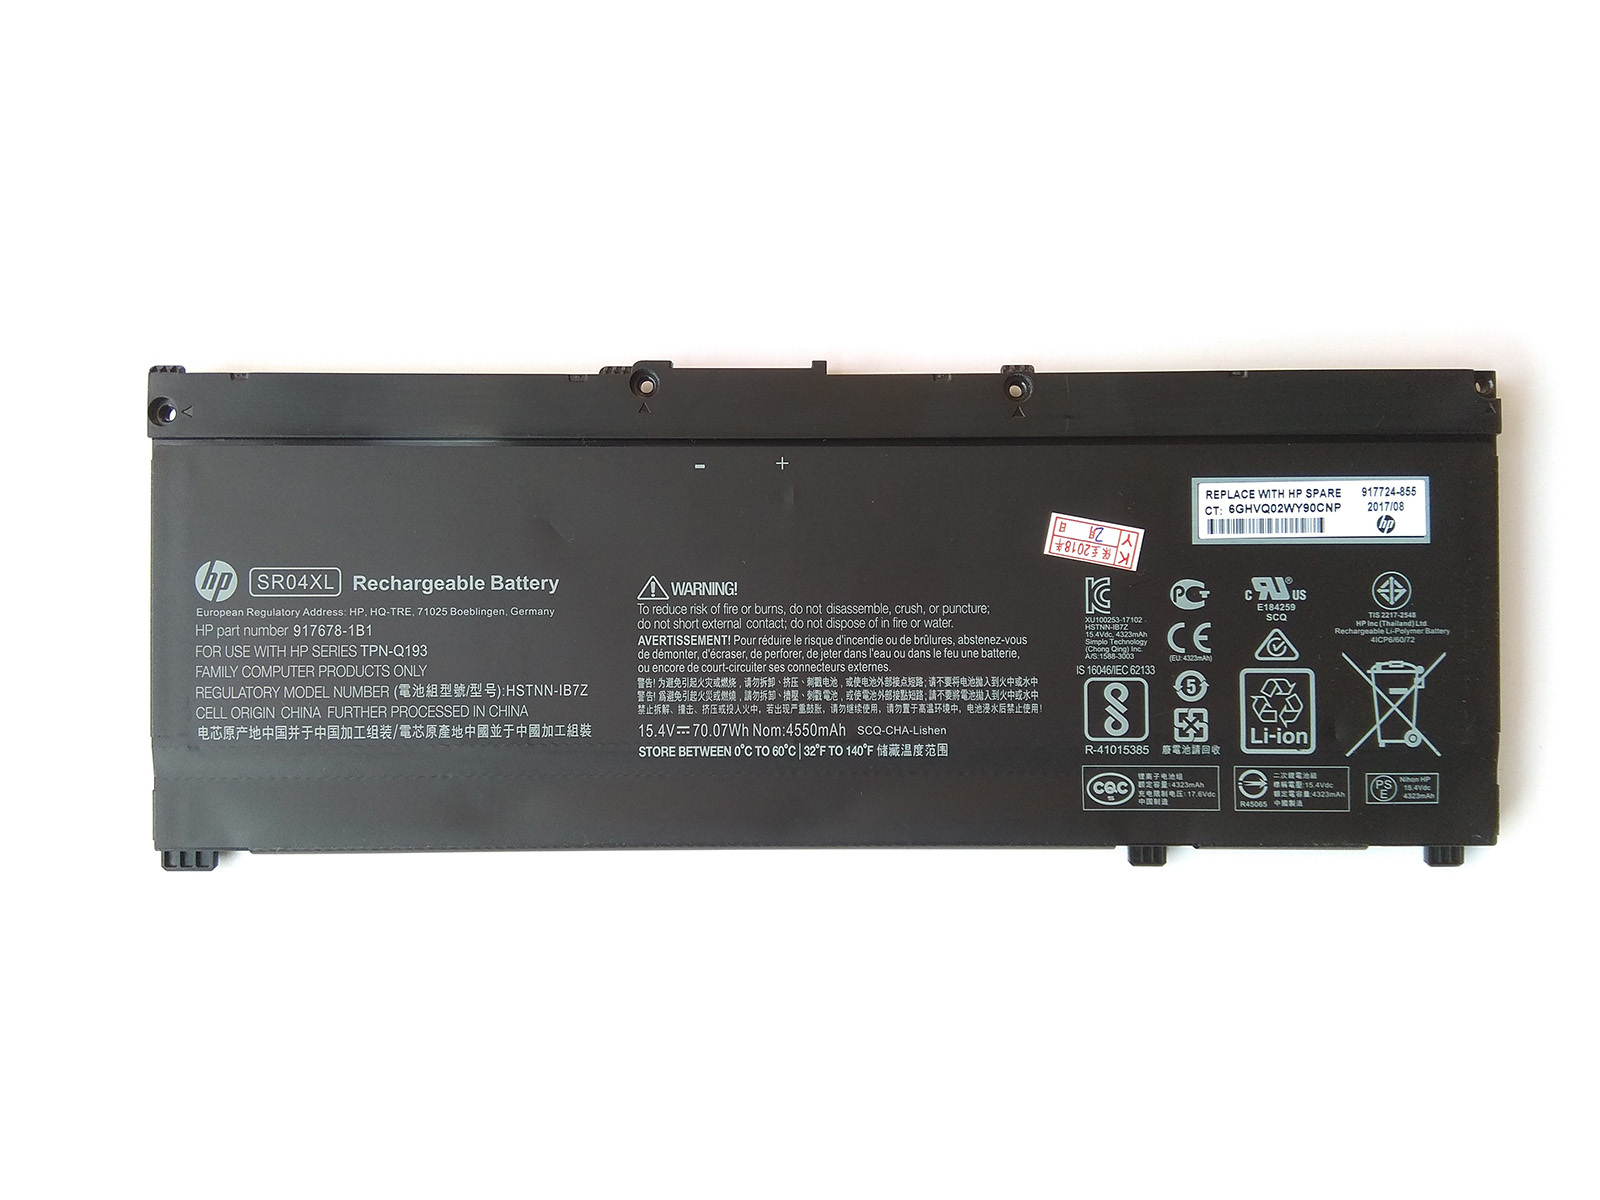 Primary image for HP Omen 15-CE008NM 2LC62EA Battery SR04XL 917724-855 TPN-Q193